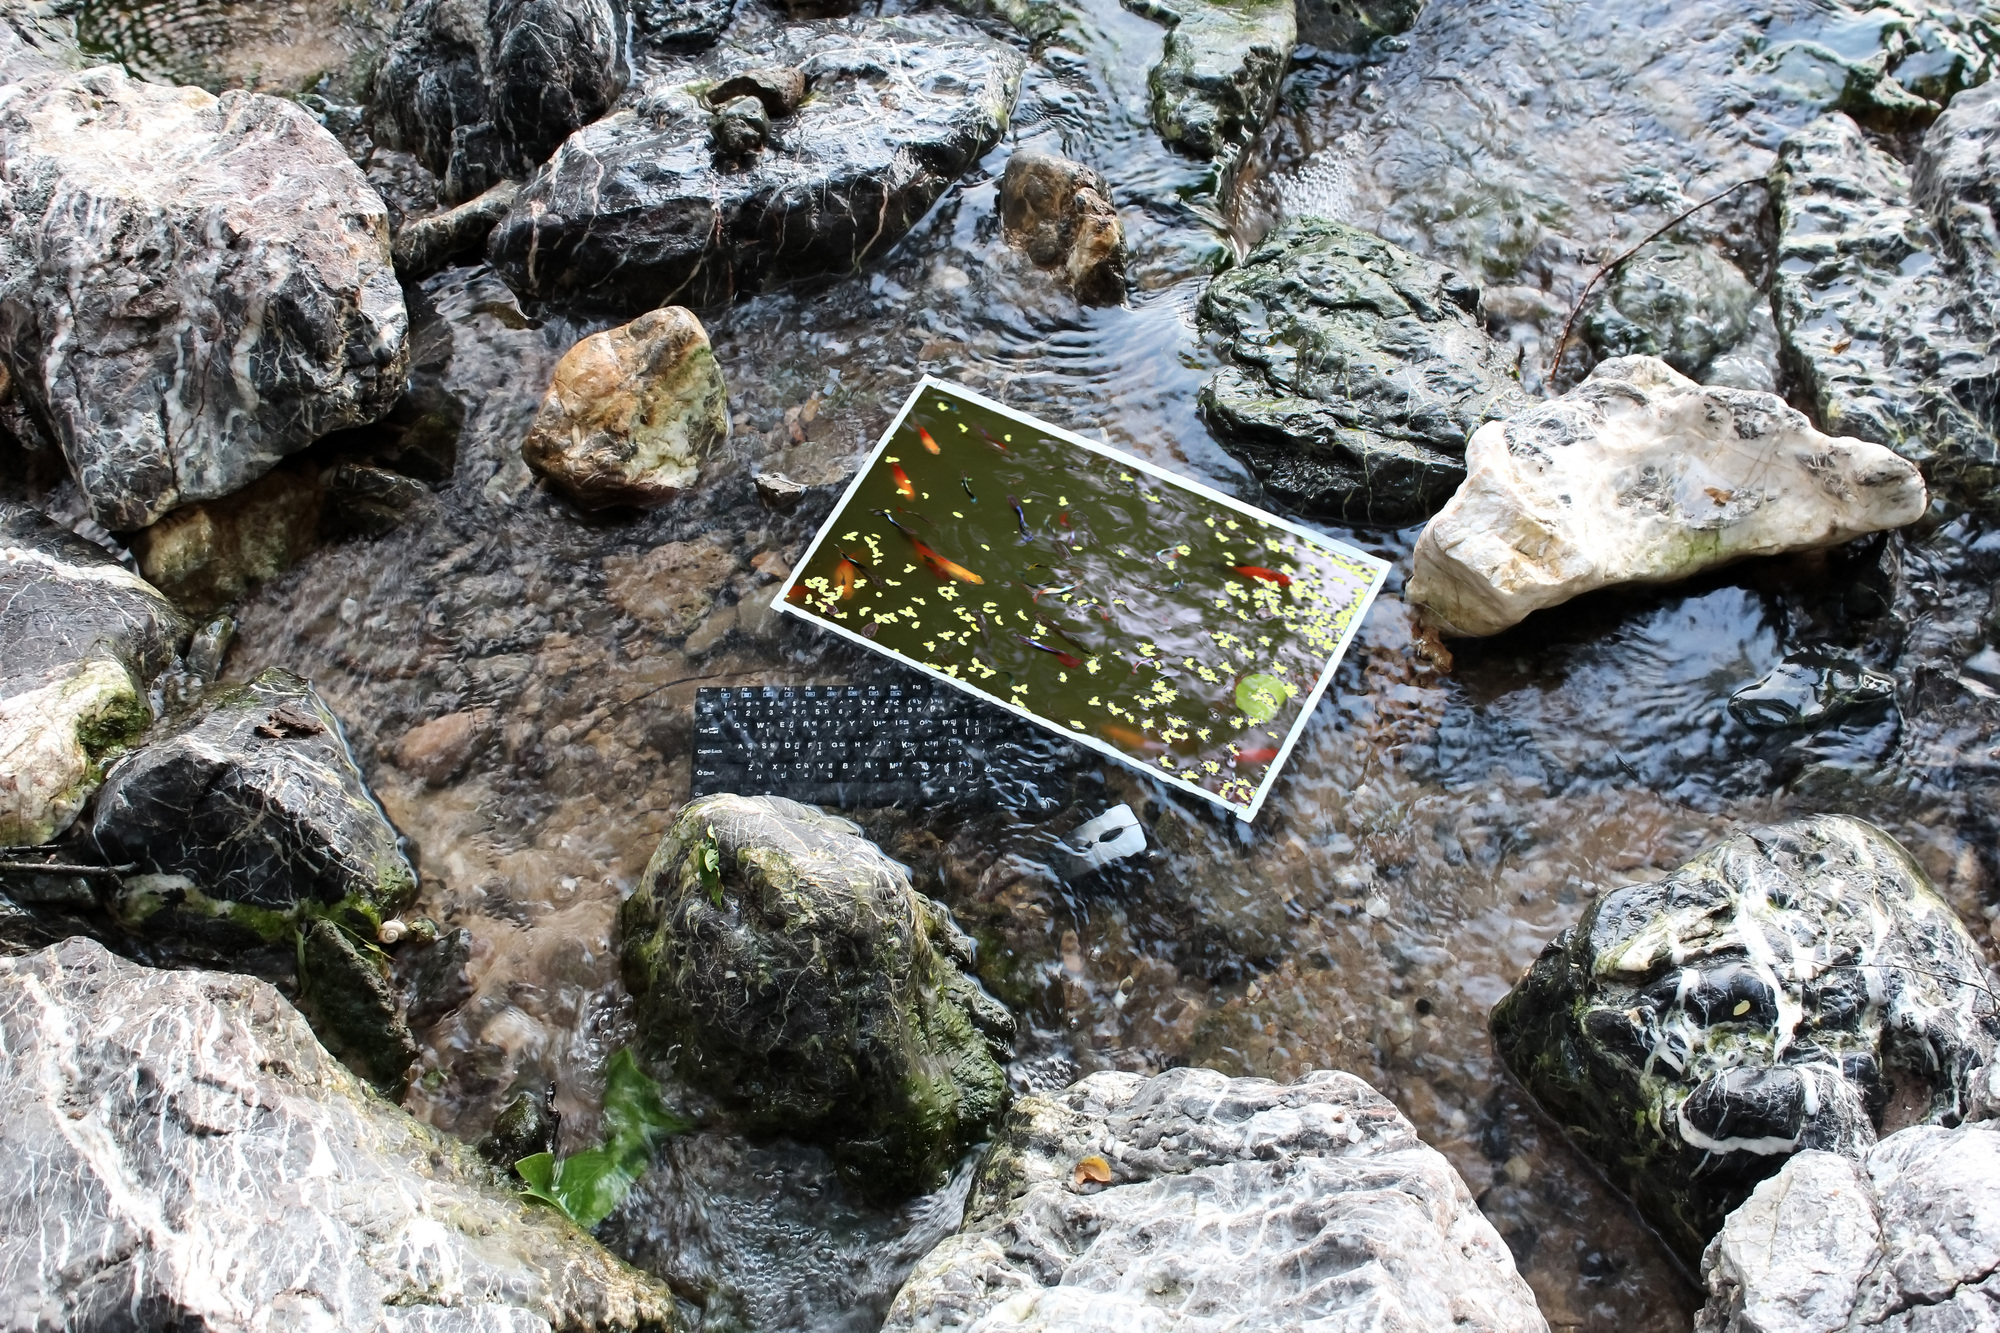 The computer screen with fish under the surface of the water in a waterfall.